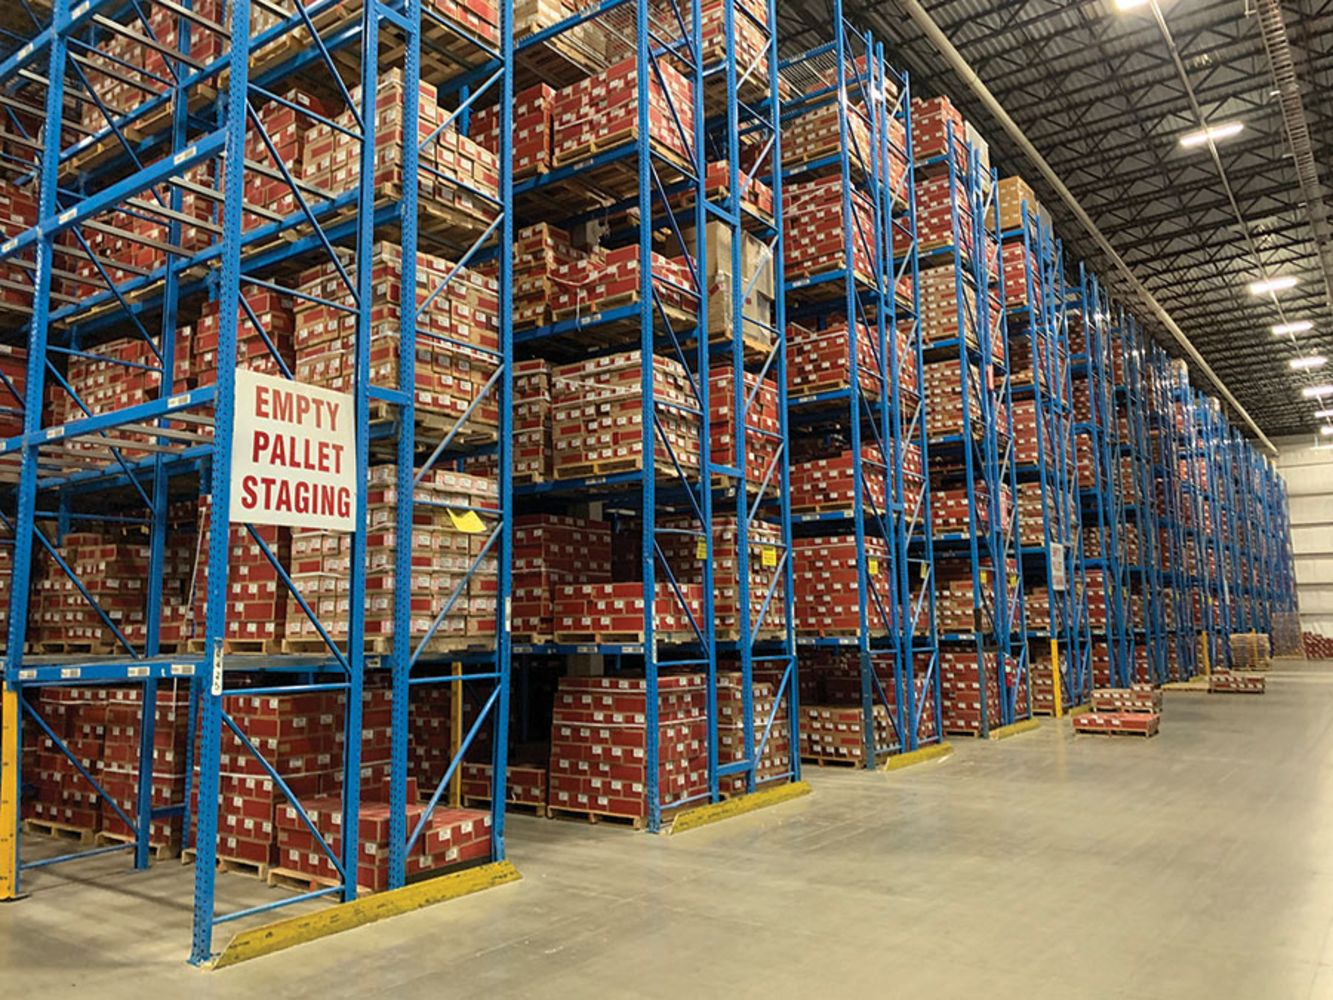 1,000,000+ SF DISTRIBUTION CENTER - DAY 1 of Huge 2-Day Auction - Pallet Racking, Forklifts, Pick Modules, Shuttle Systems